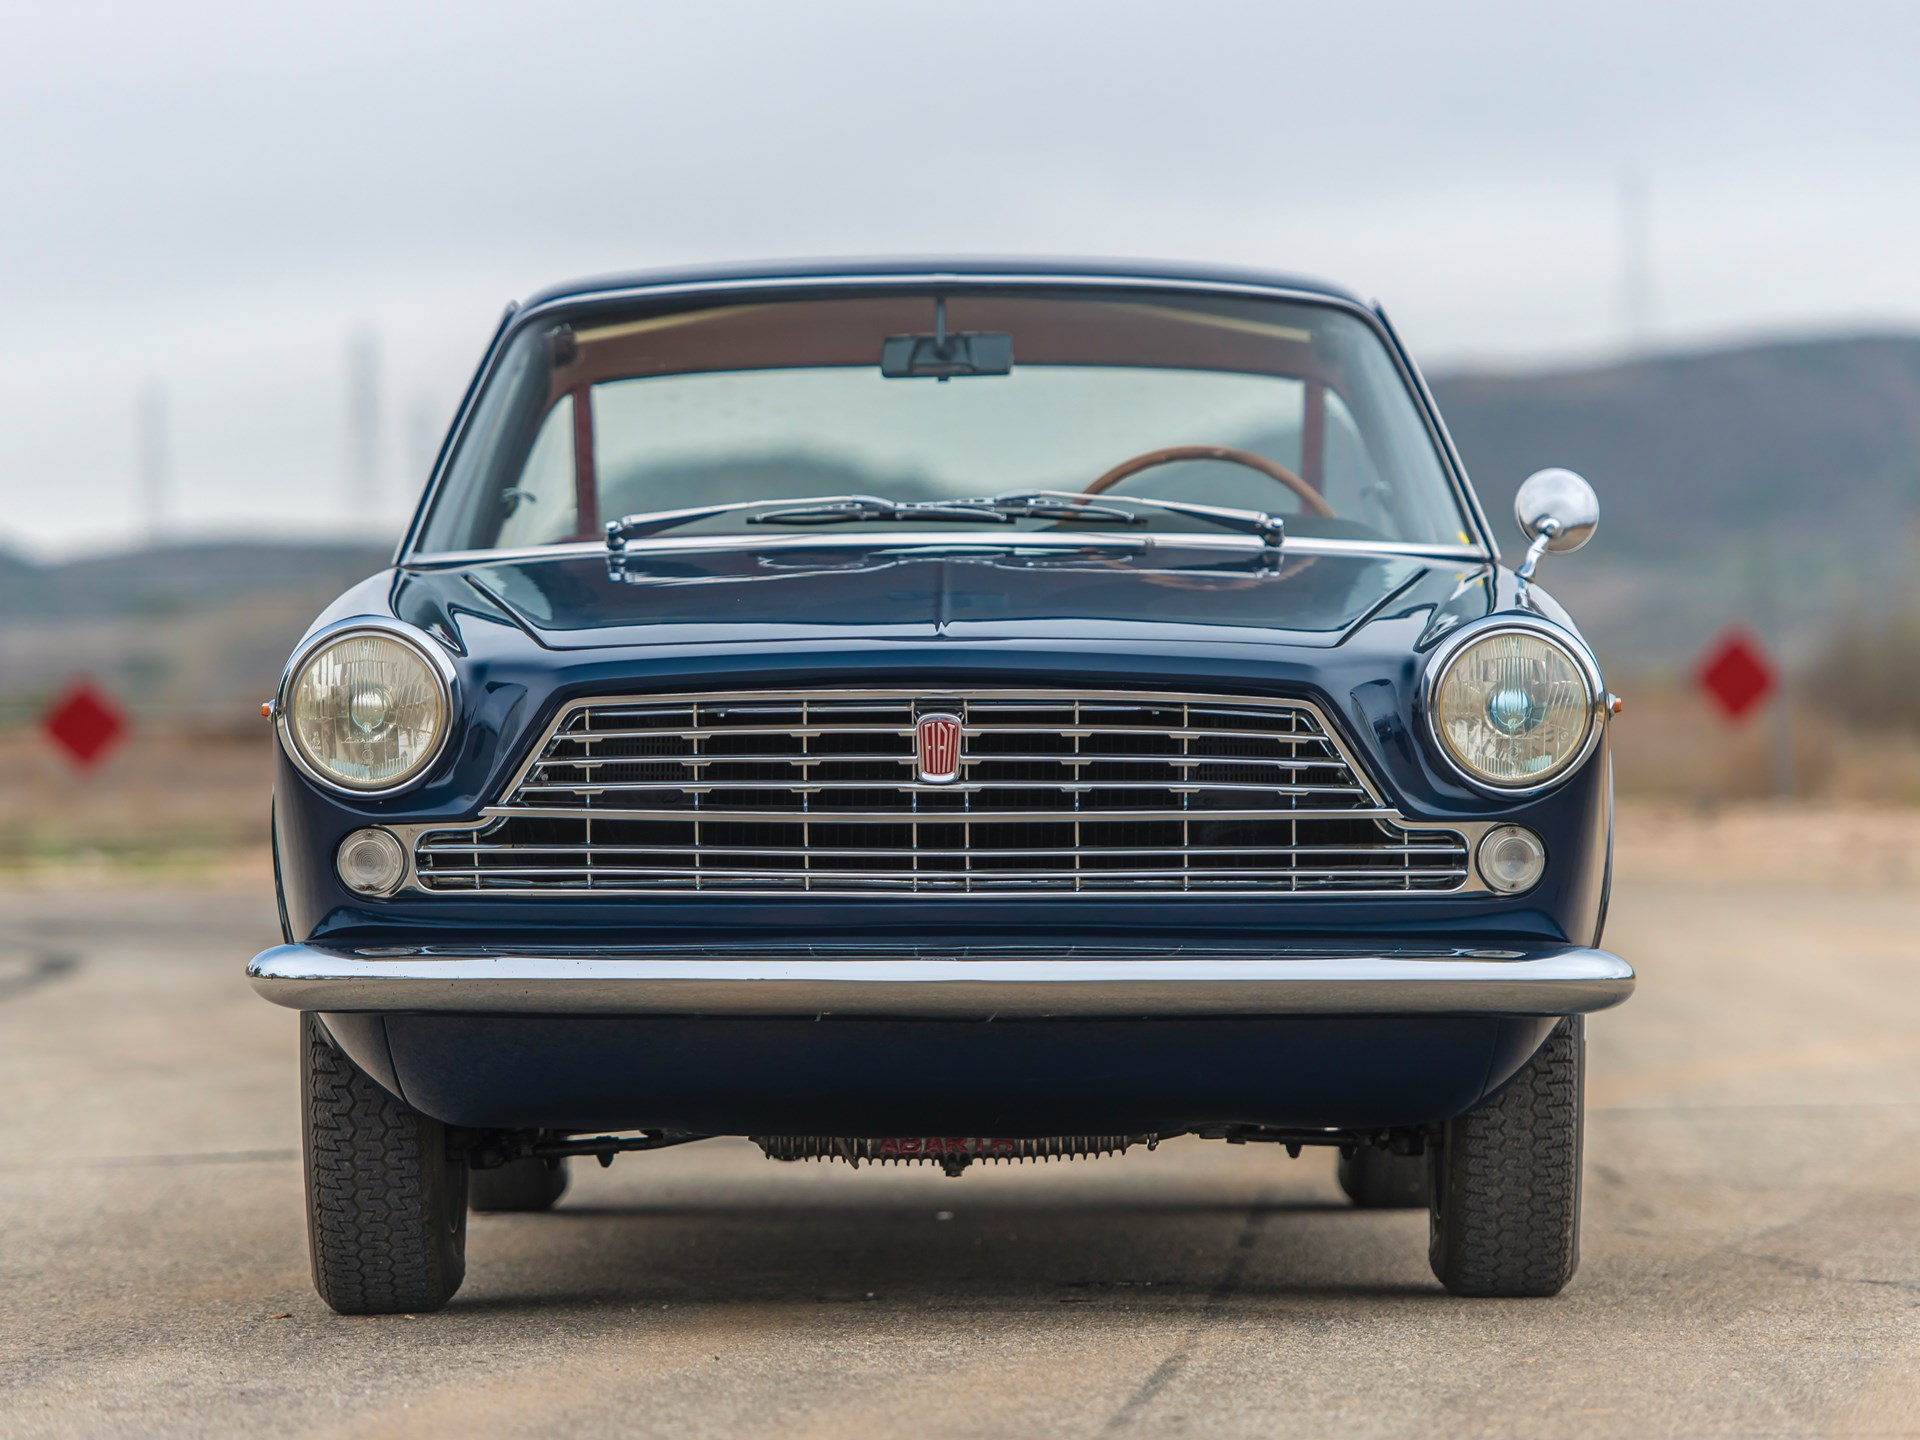 1964 Fiat 2300 S Coupe by Ghia